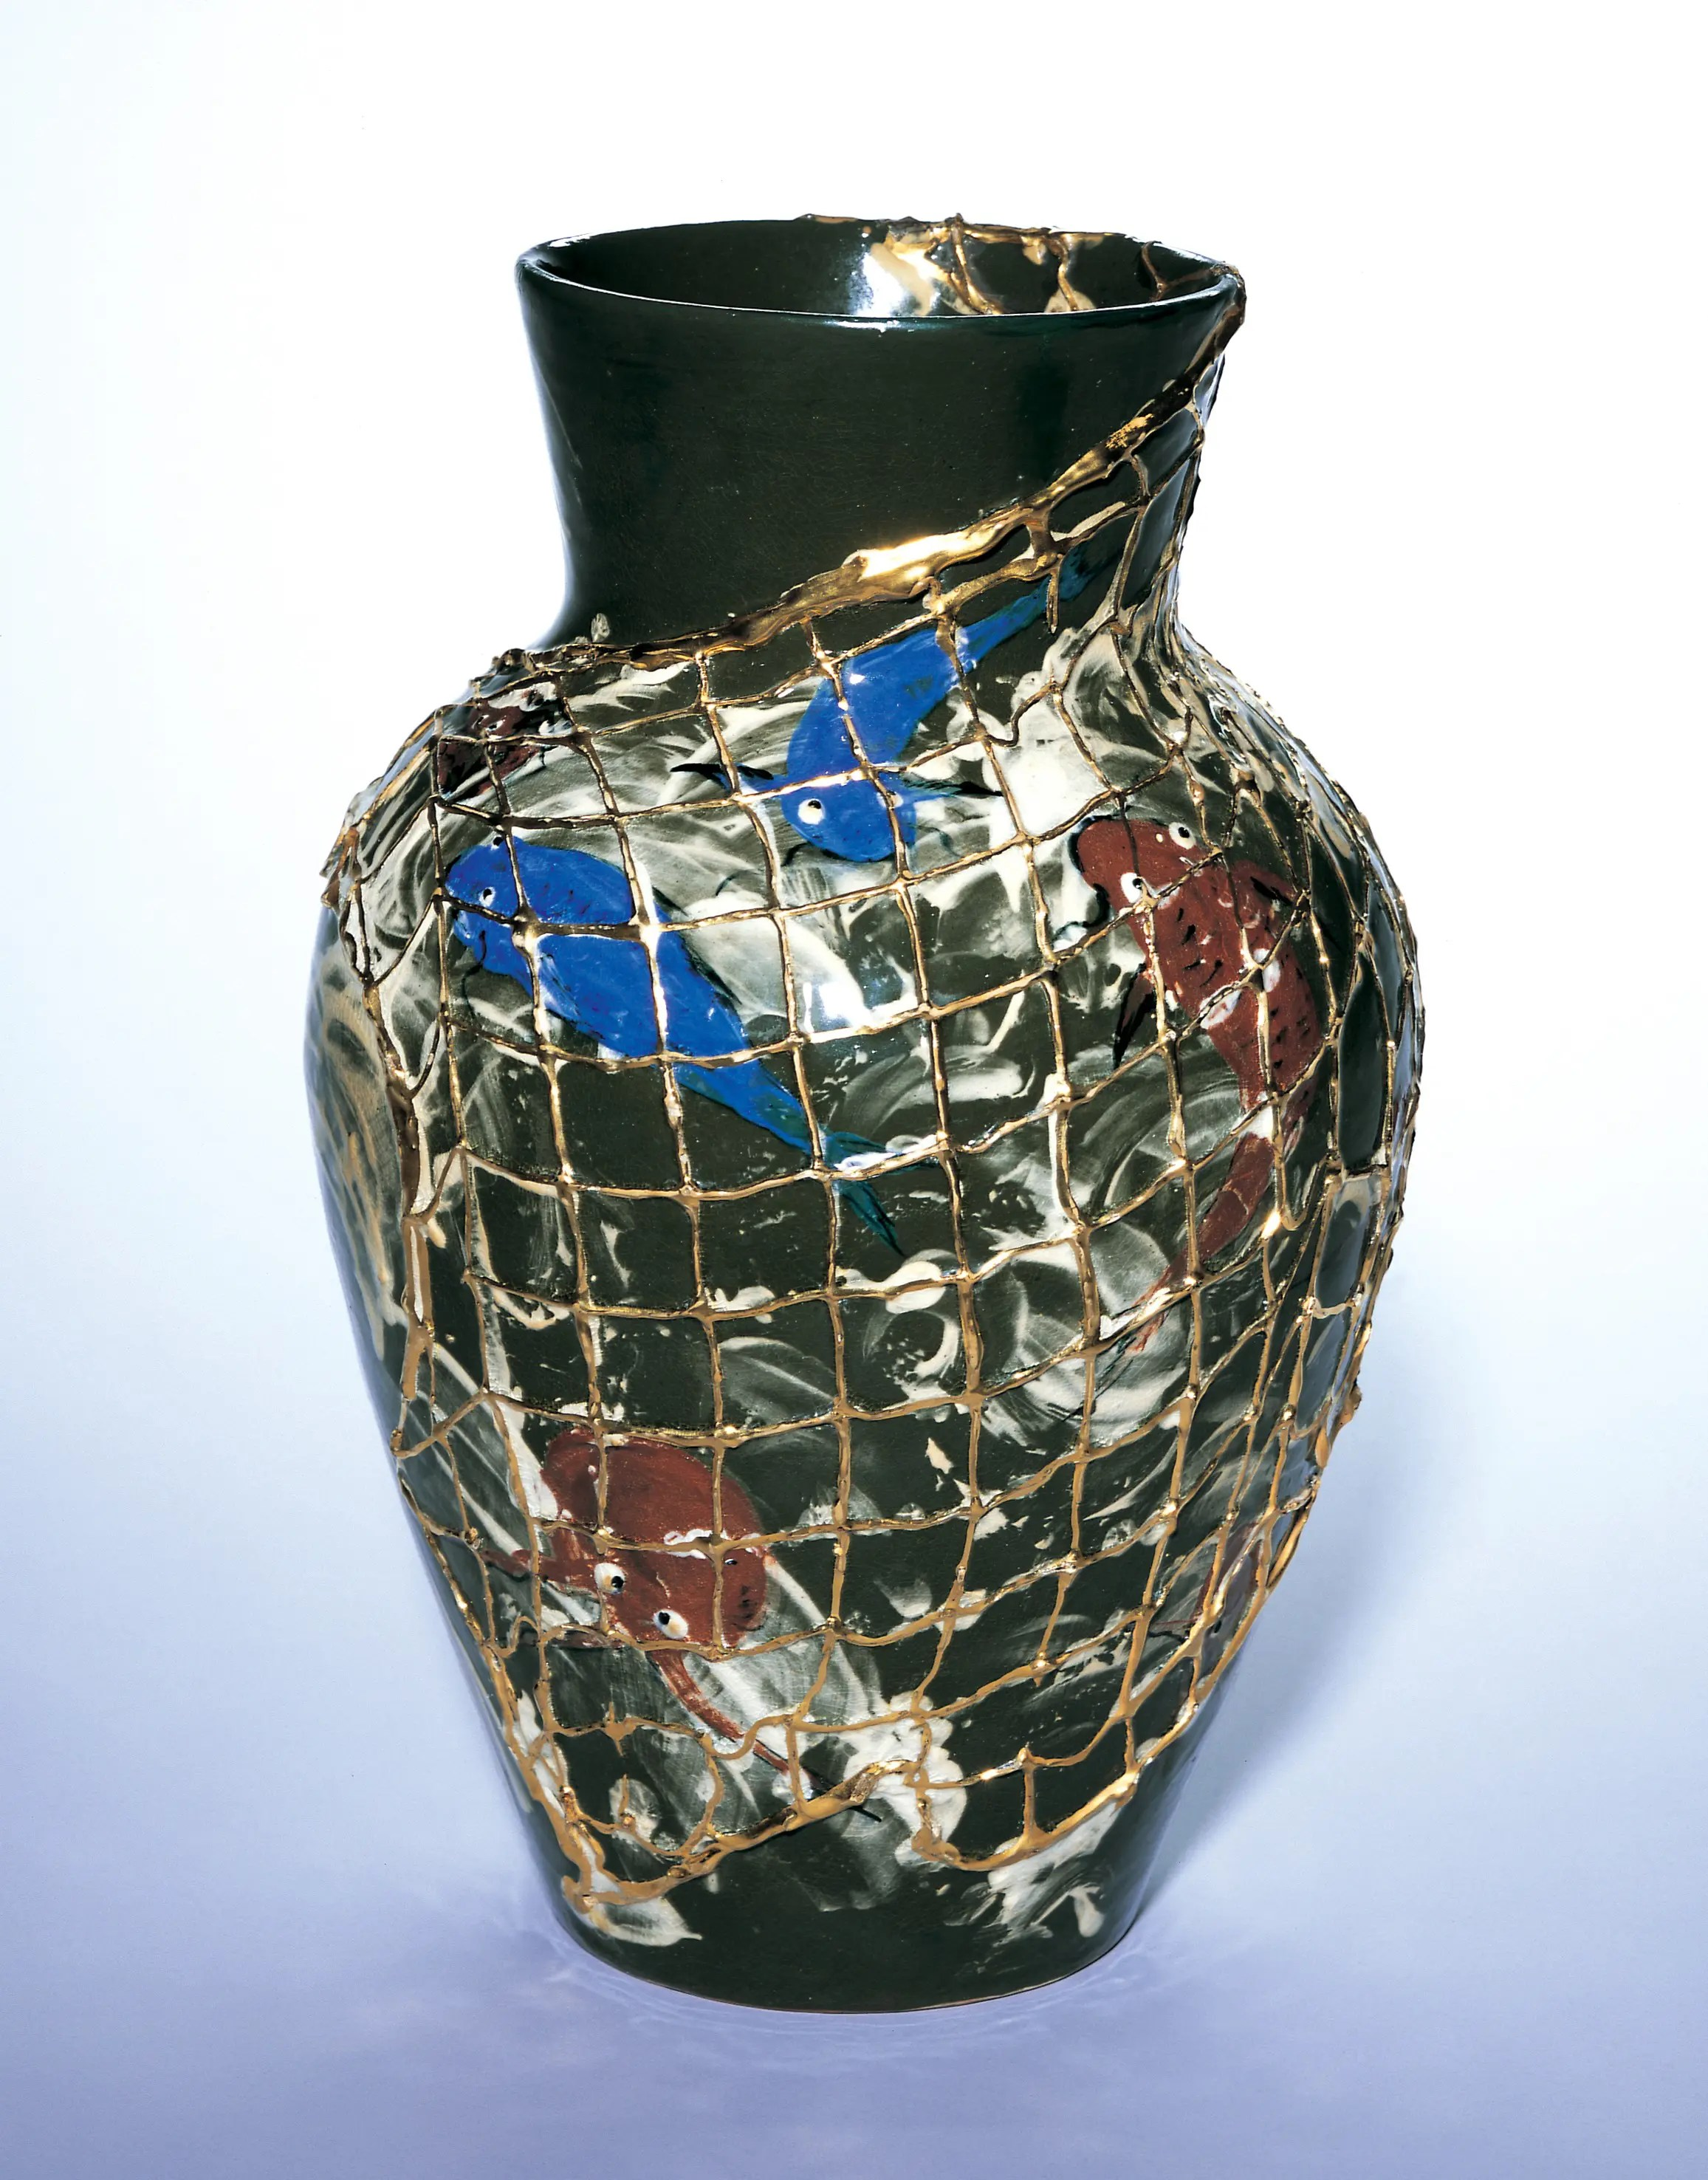 Vase from Women Breaking Boundaries Cincinnati Exhibit